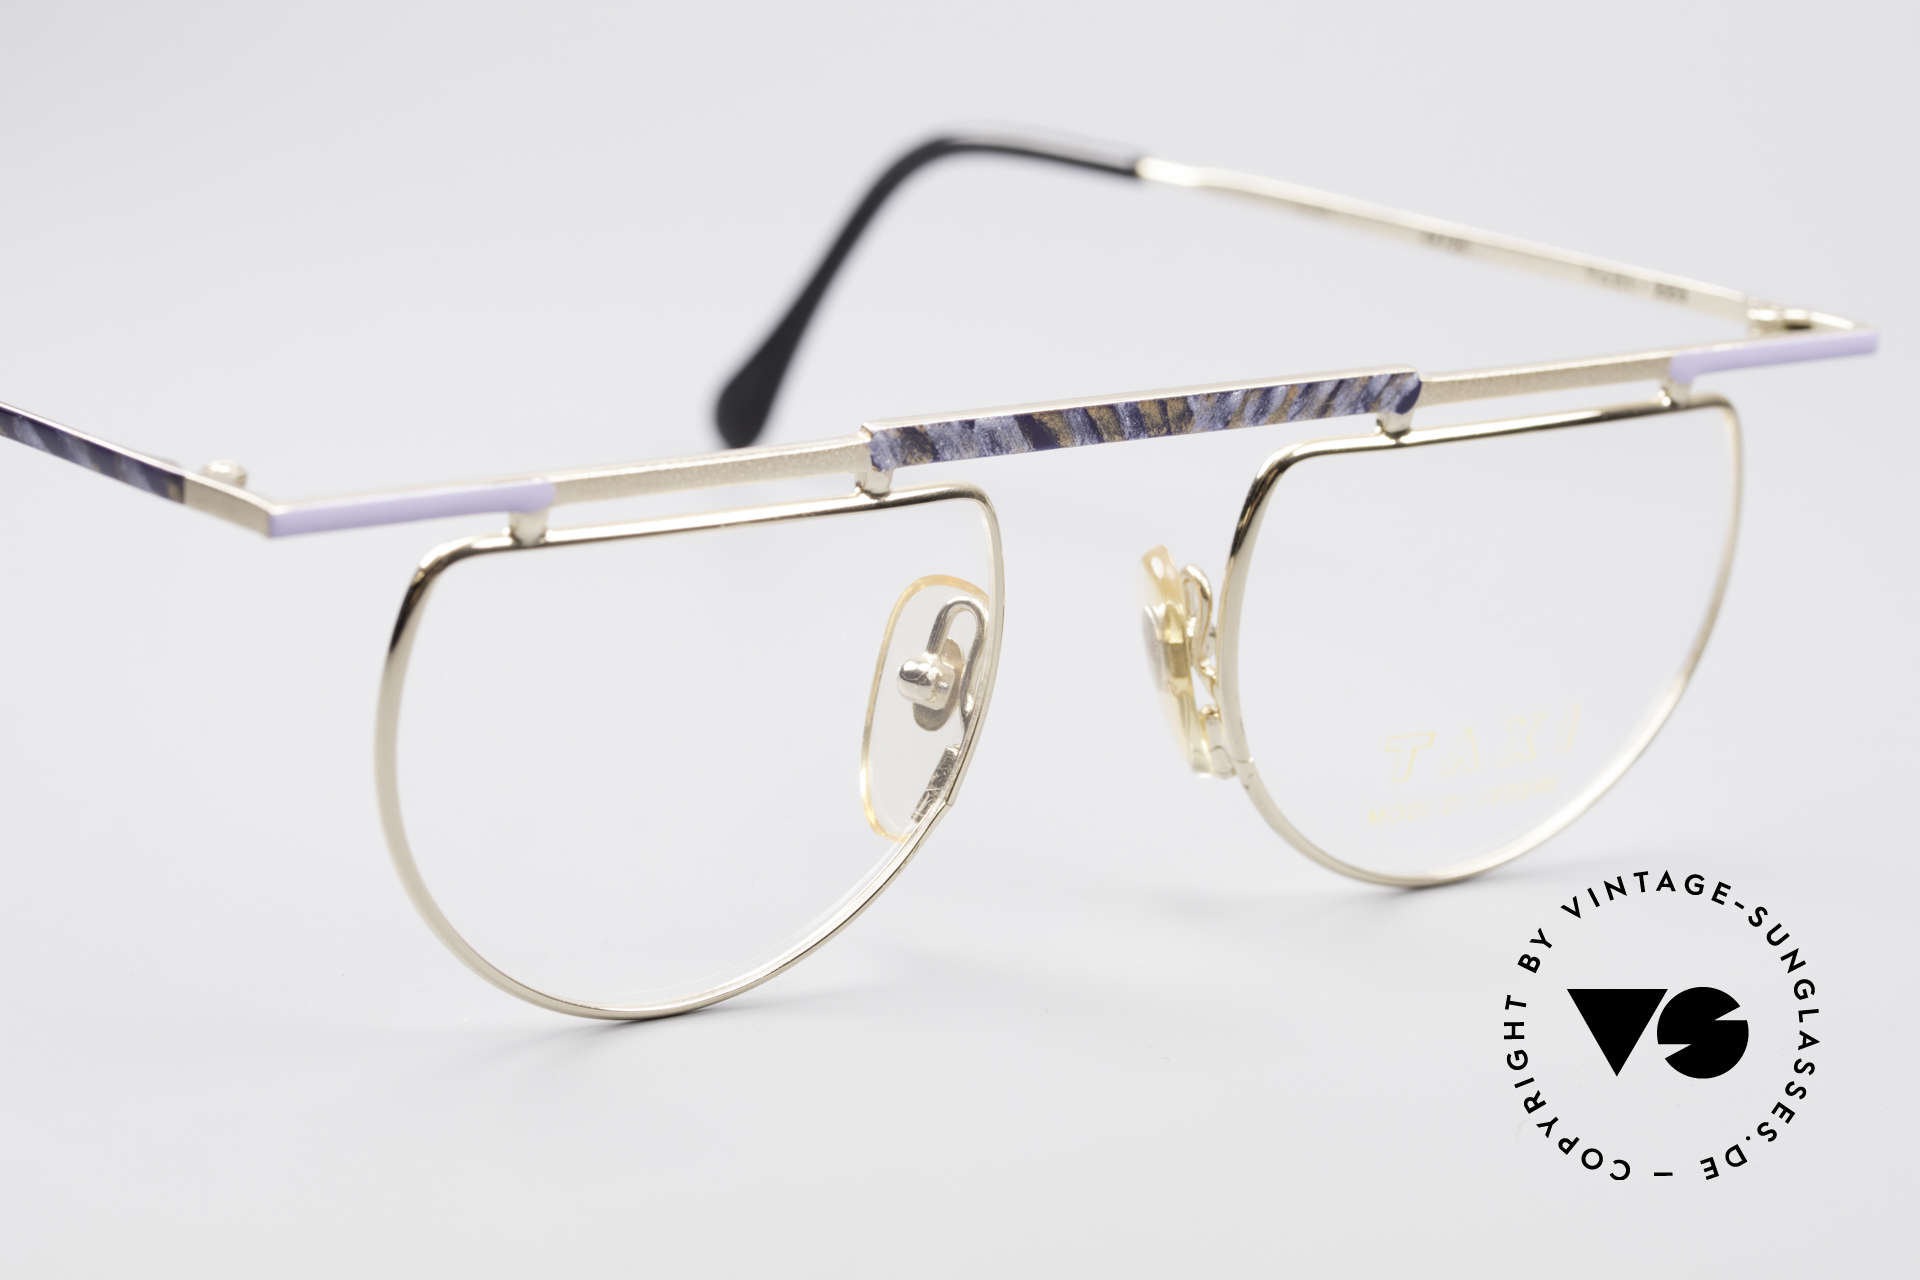 Taxi 223 by Casanova Vintage Art Eyeglasses, unworn (like all our artful eyeglasses by Taxi / Casanova), Made for Women